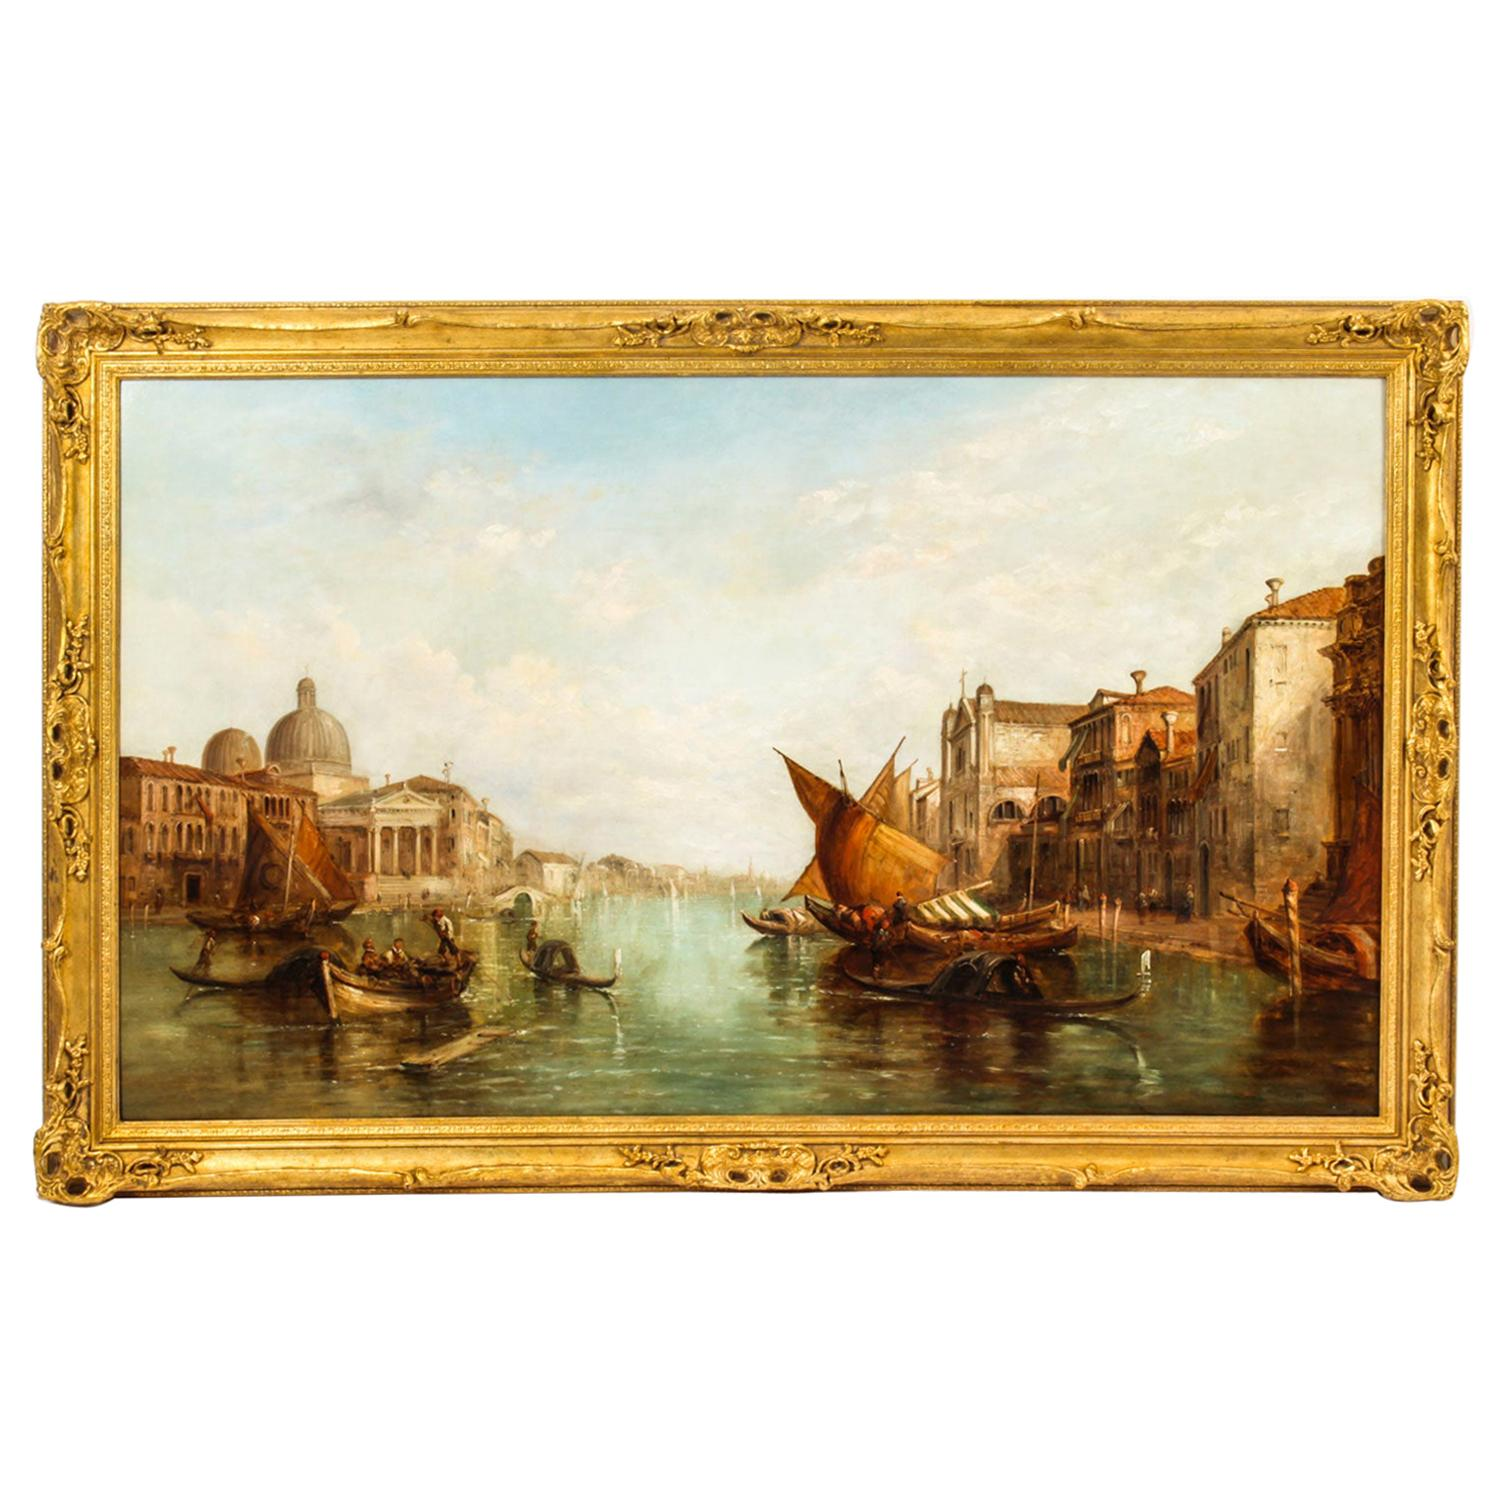 Antique Oil Painting Grand Canal Alfred Pollentine Dated 1877, 19th Century